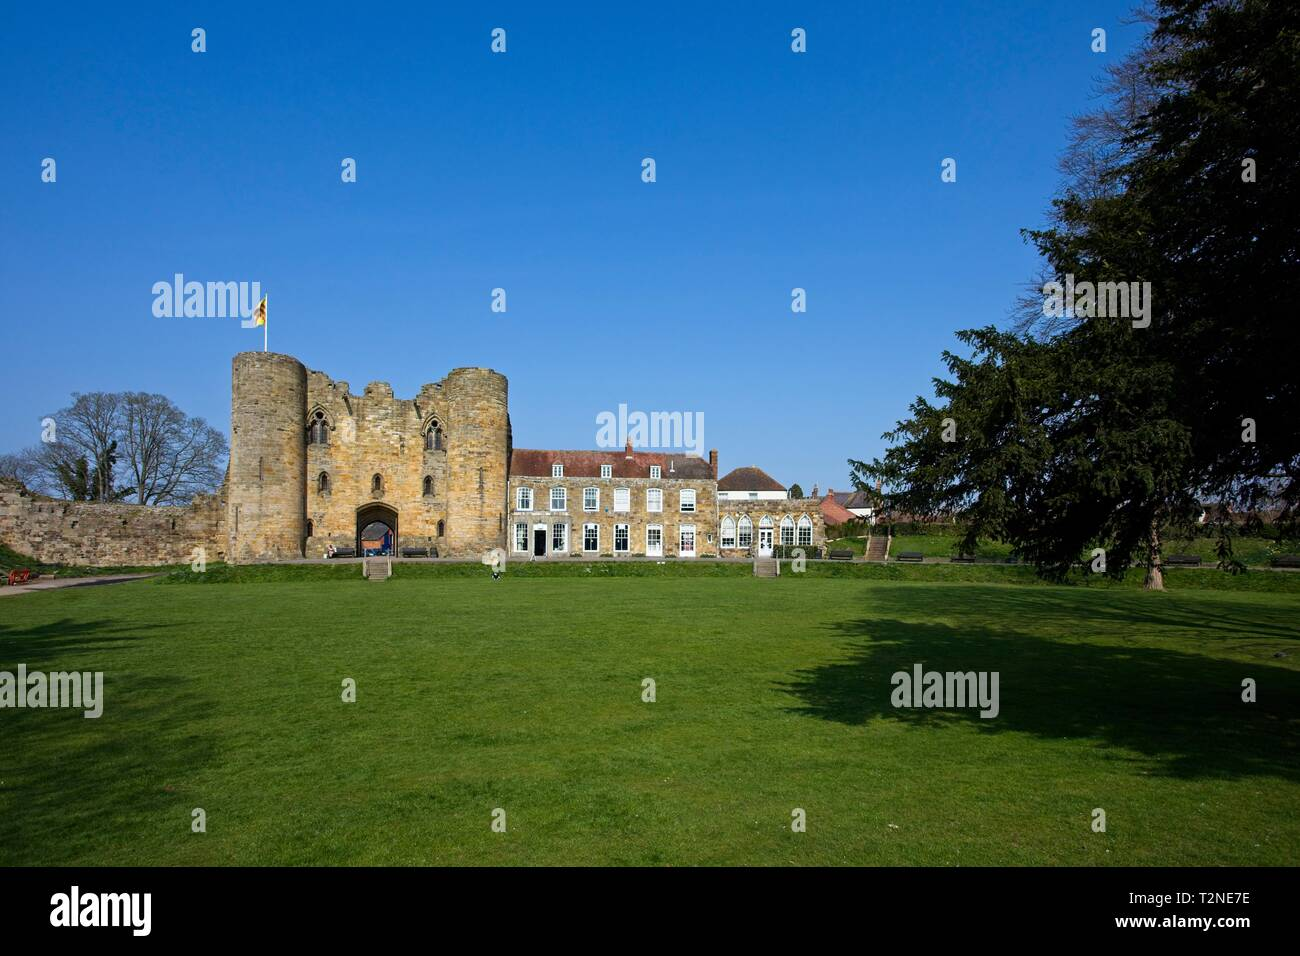 Tonbridge Castle Gatehouse and mansion, Kent,England - Stock Image